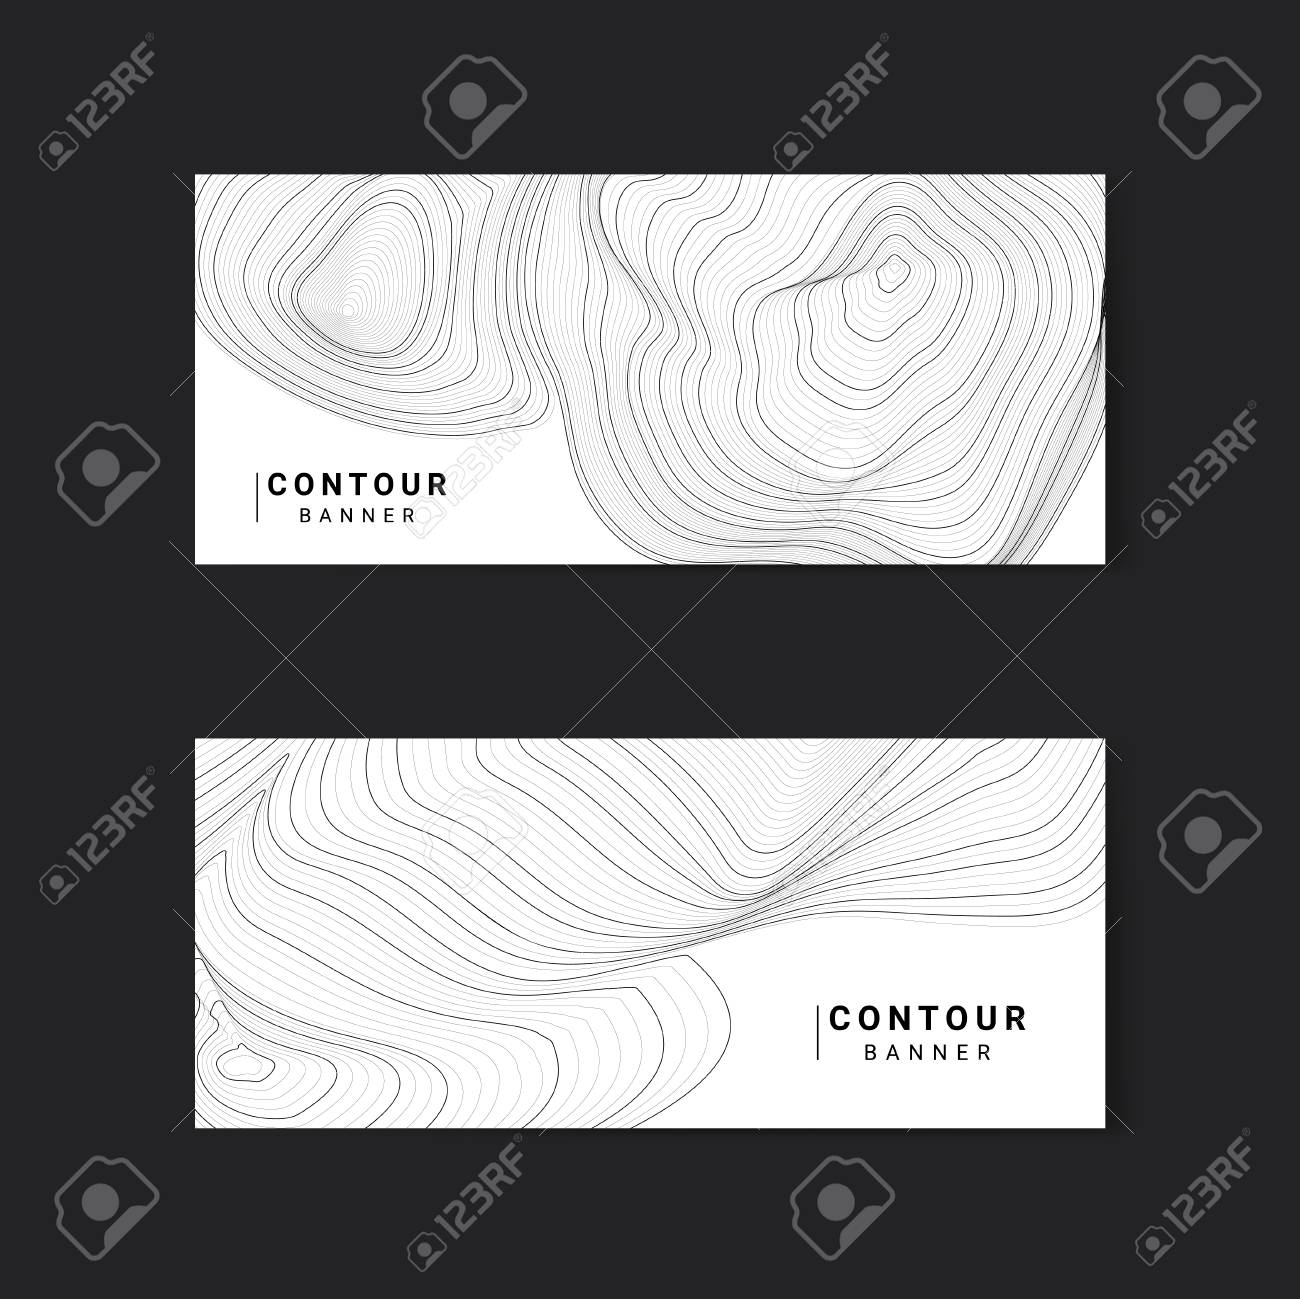 Black and white abstract map contour lines banners set - 115231298